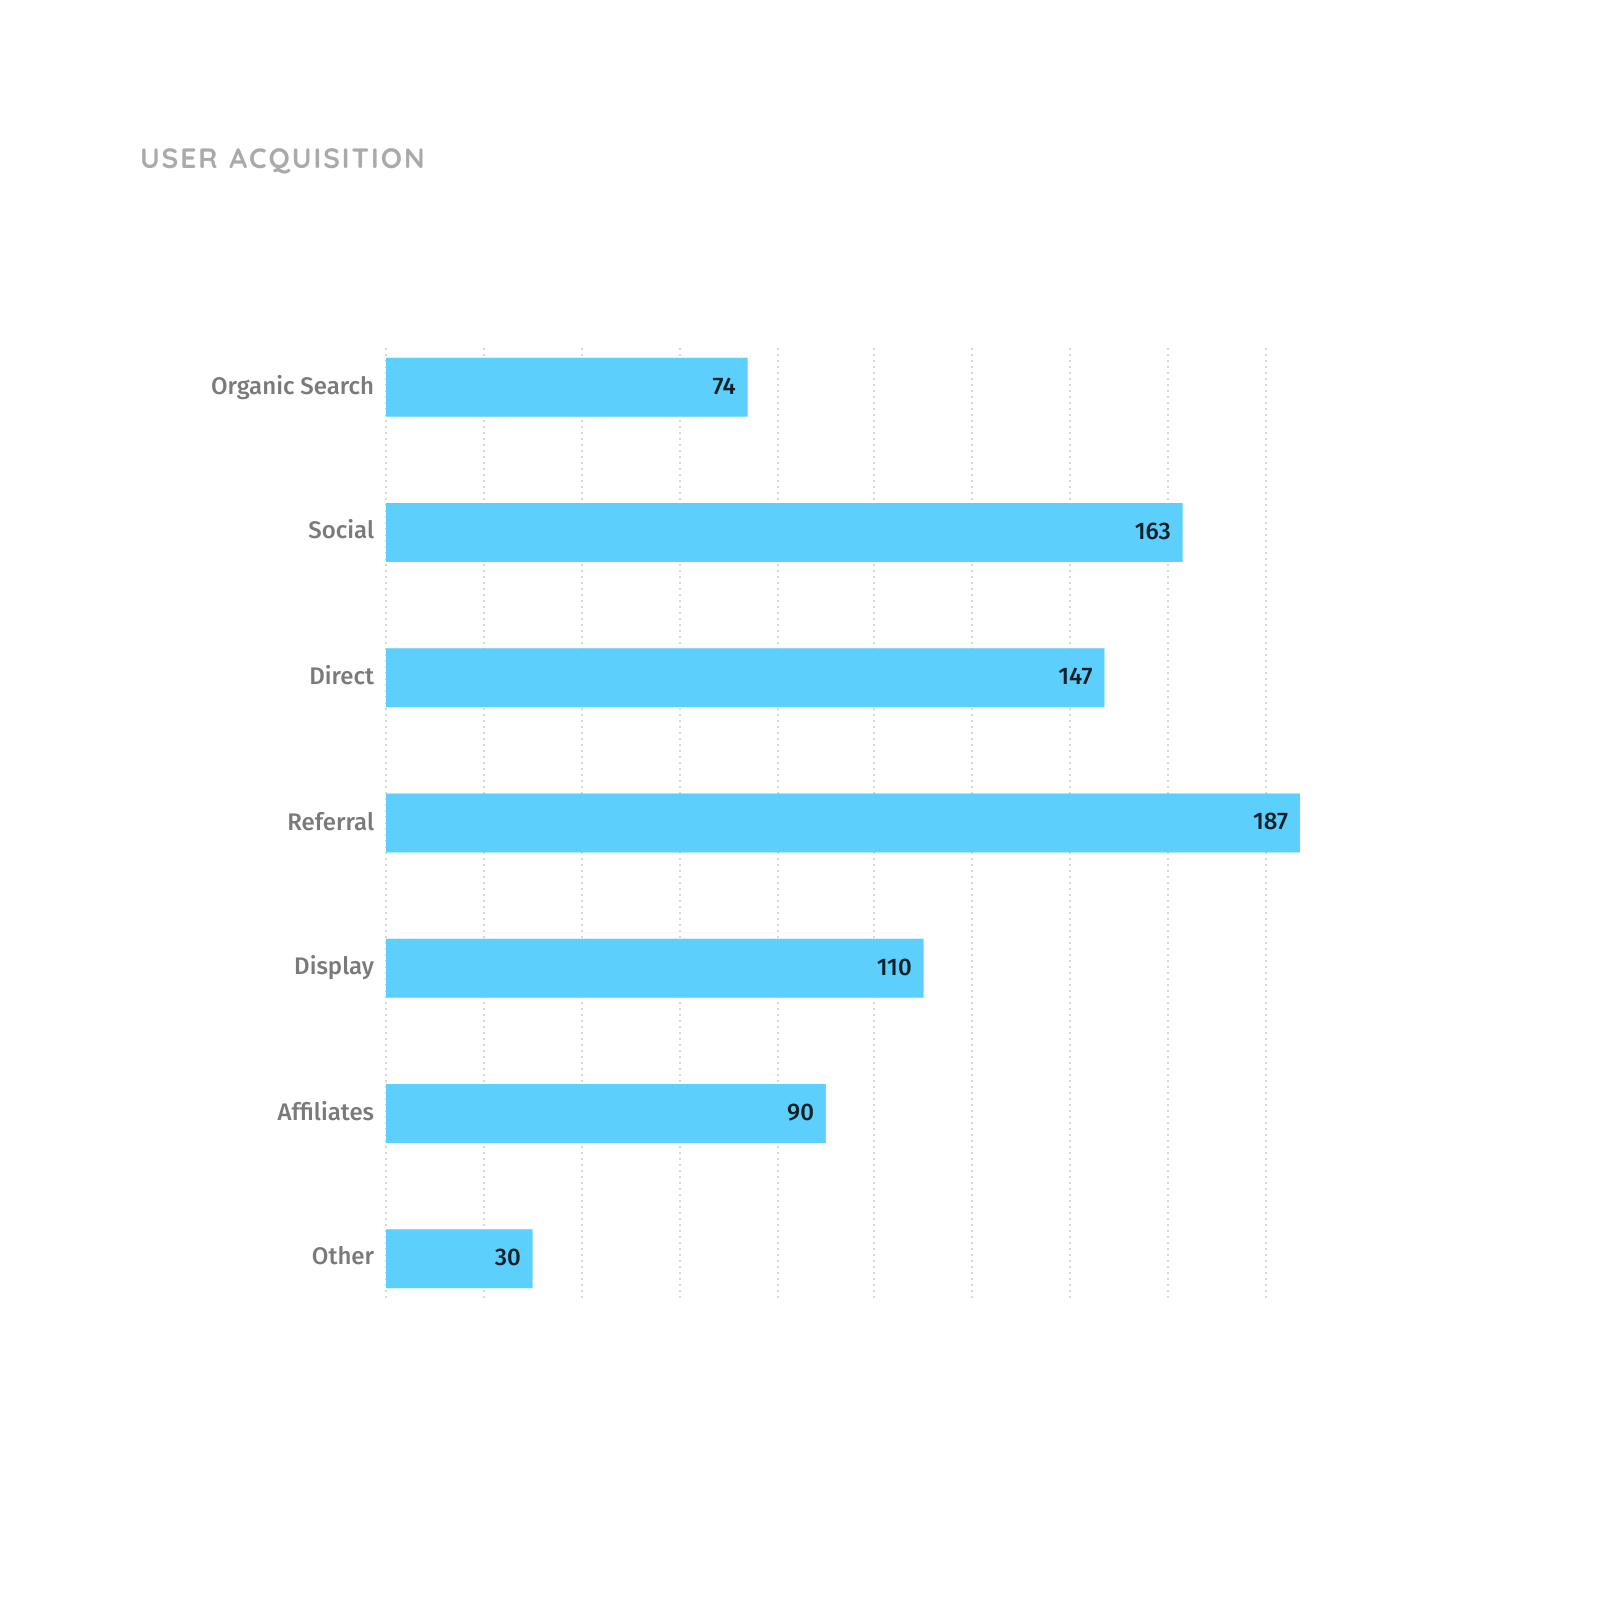 Grouped Bar Chart for User Acquisition